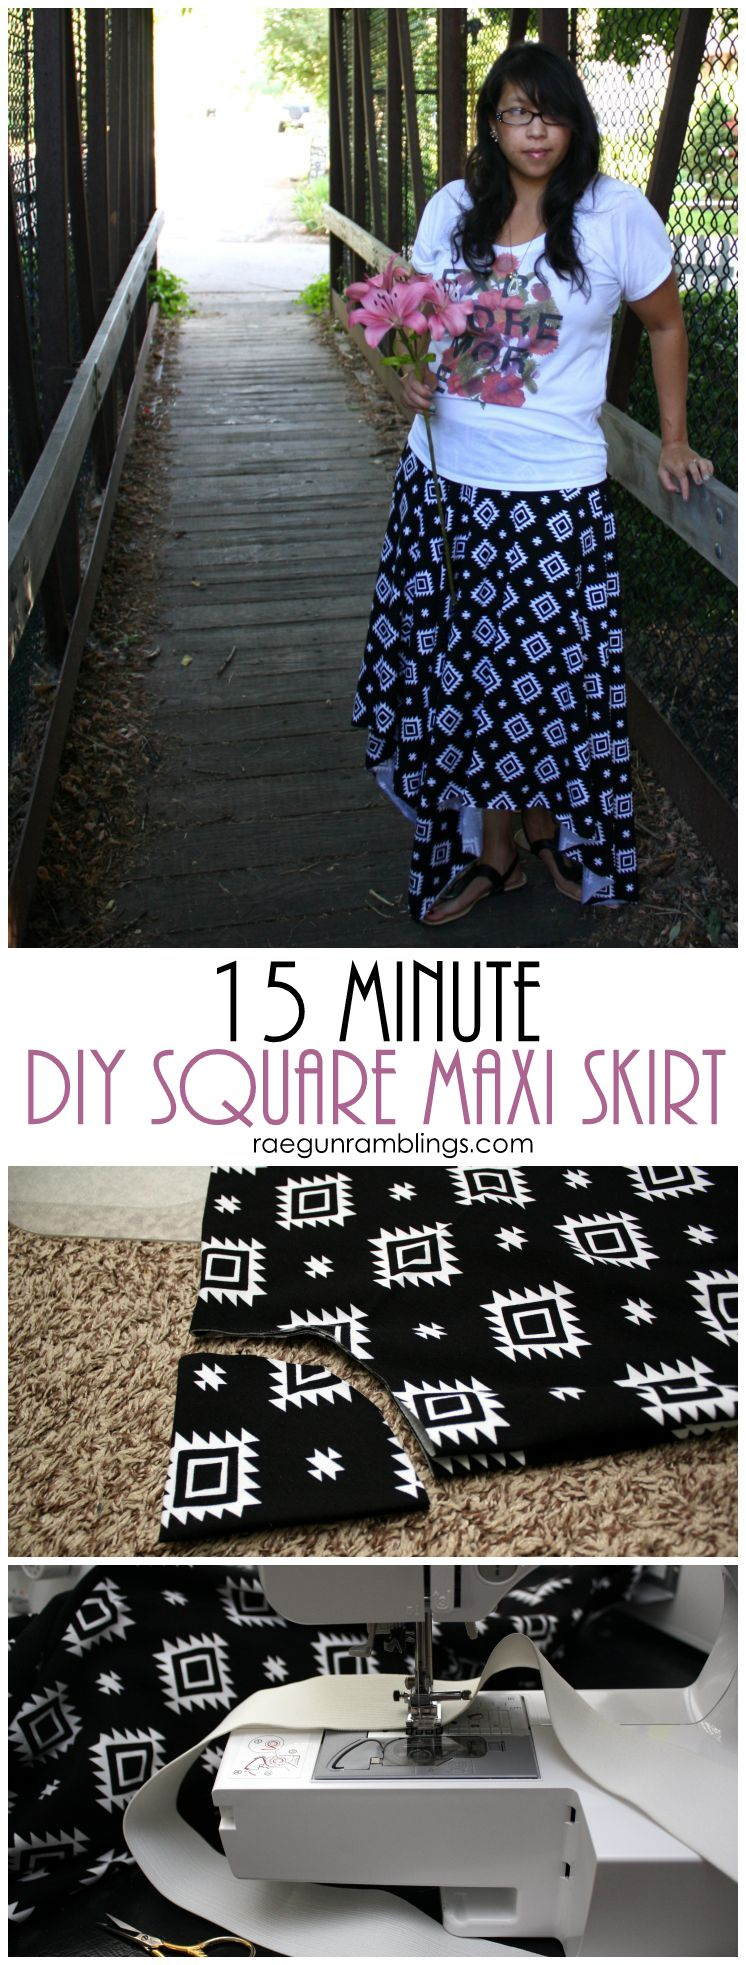 How to sew a square skirt in just 15 minutes. Easy sewing tutorial.